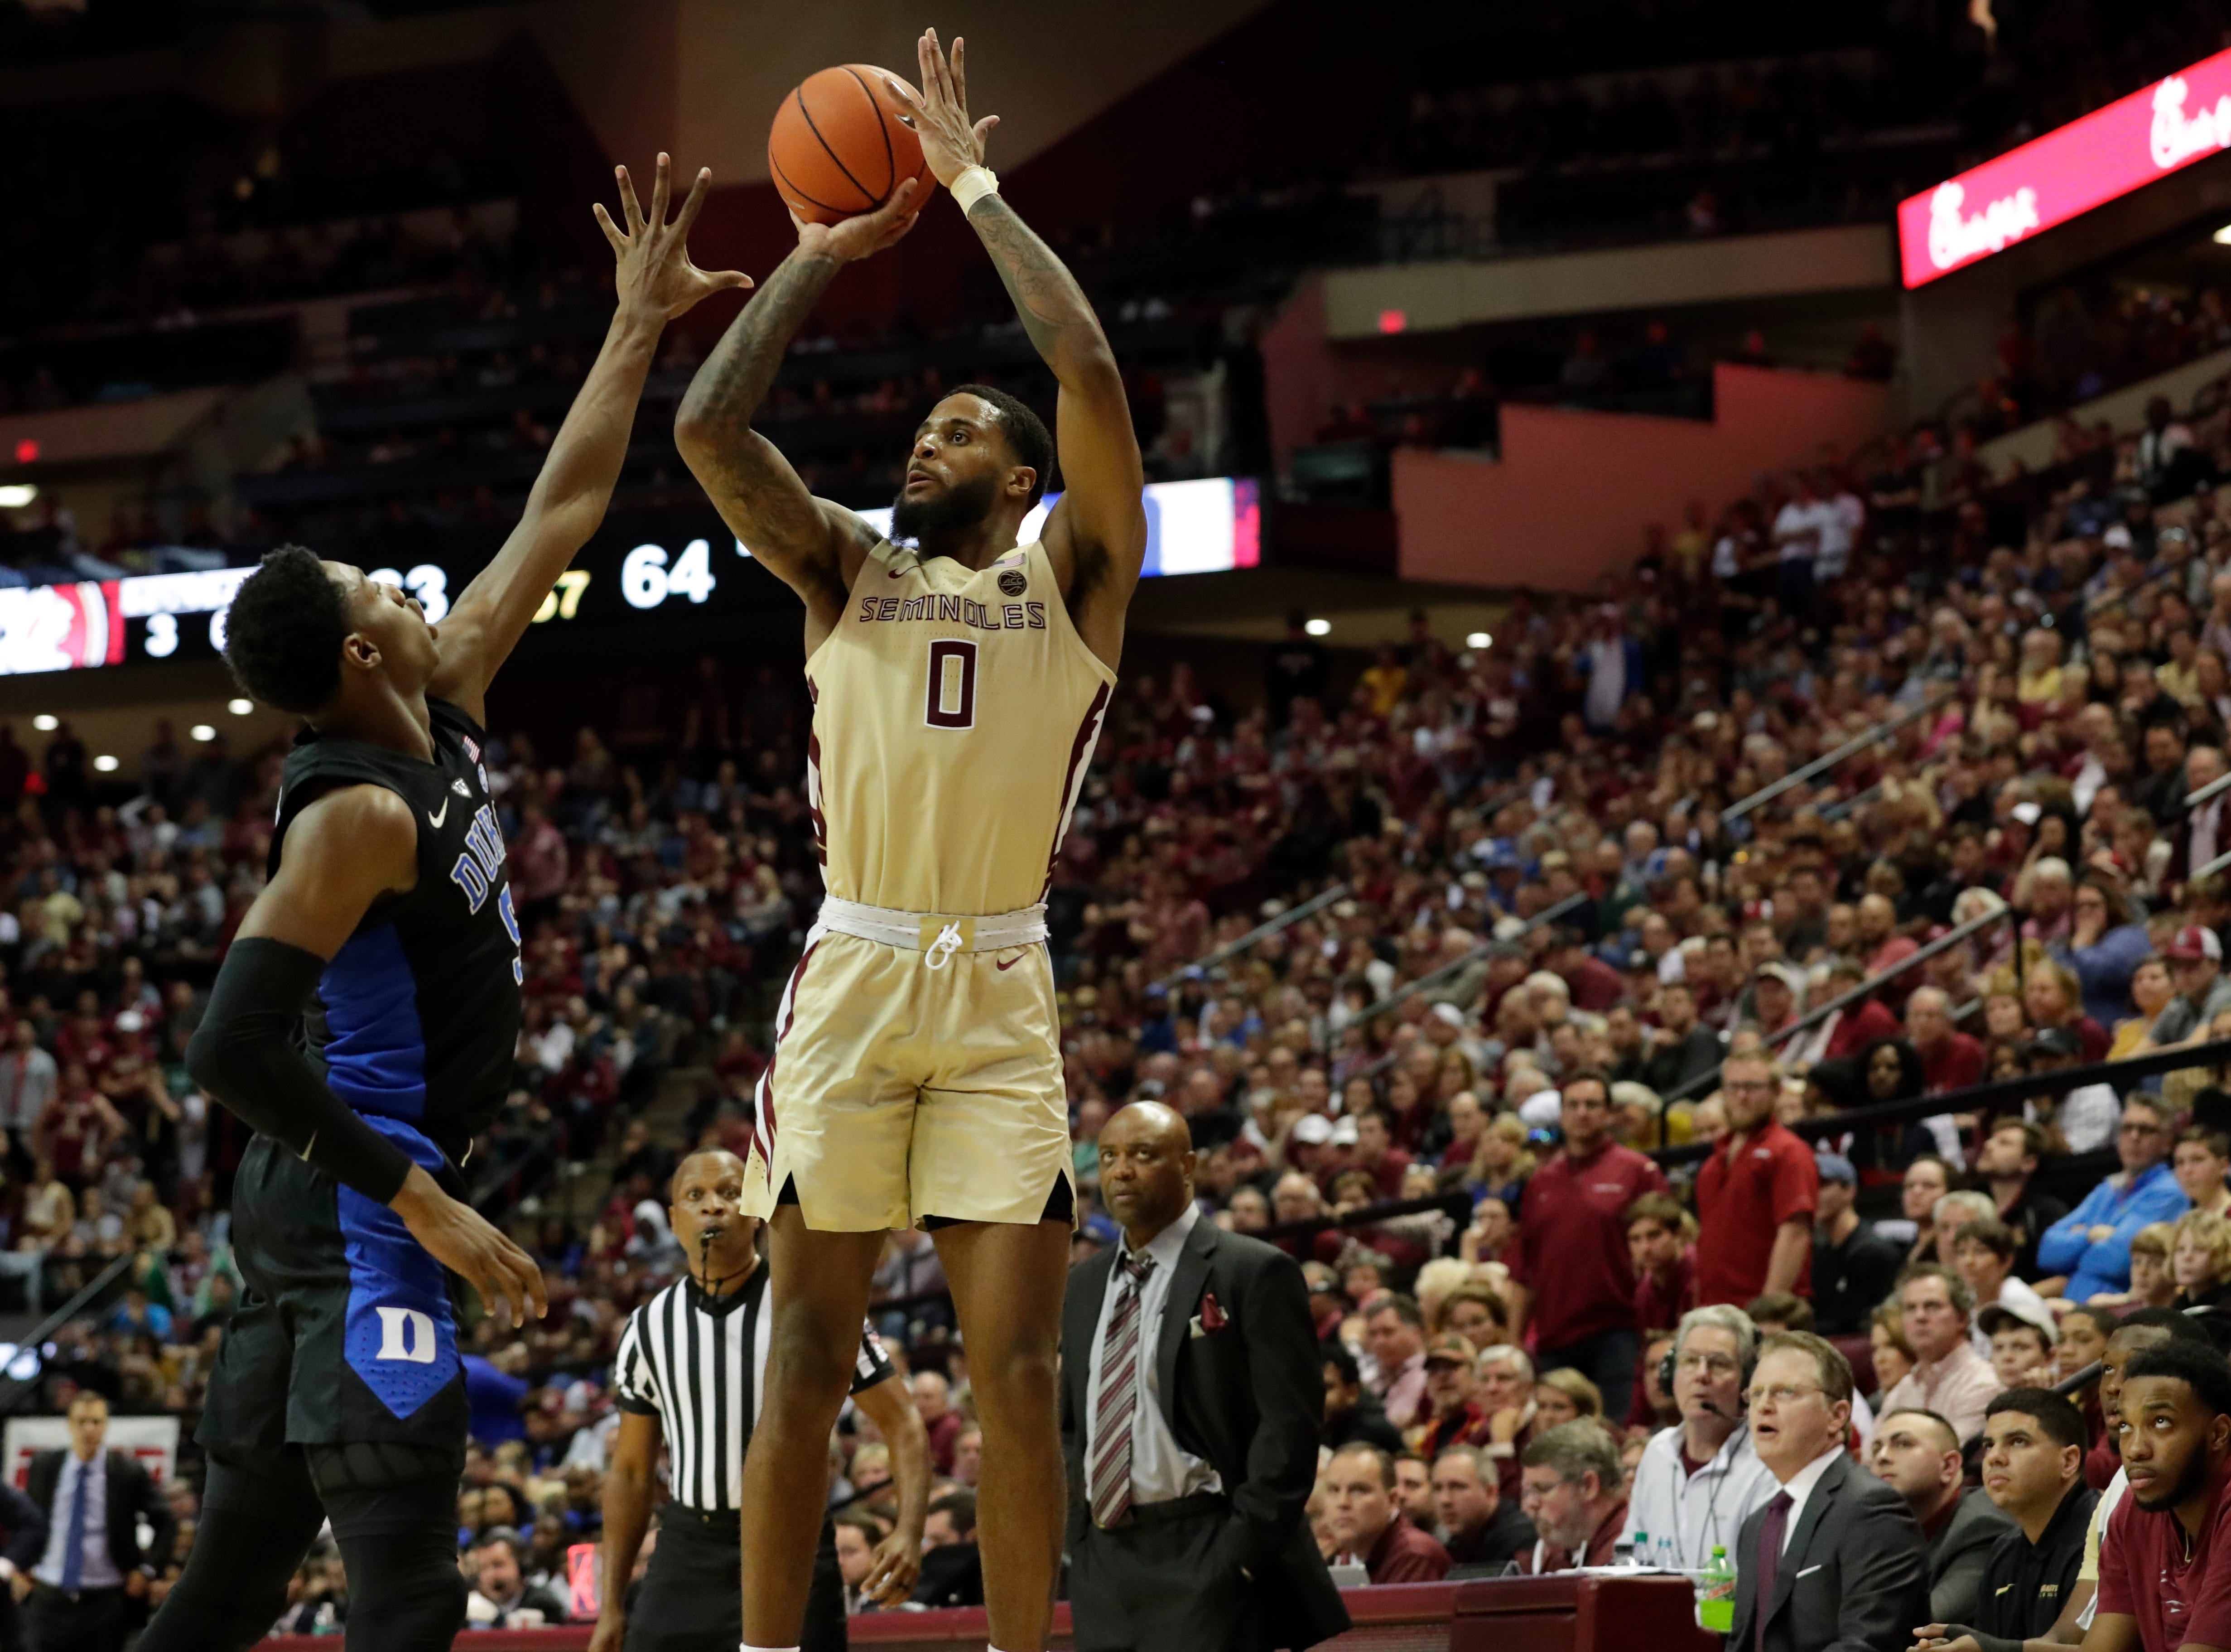 Florida State Seminoles forward Phil Cofer (0) shoots for three over his defender's reach. Ranked 13 in the ACC, the Florida State Seminoles host the number 1 team, the Duke Blue Devils, at the Tucker Civic Center, Saturday, Jan. 12, 2019.